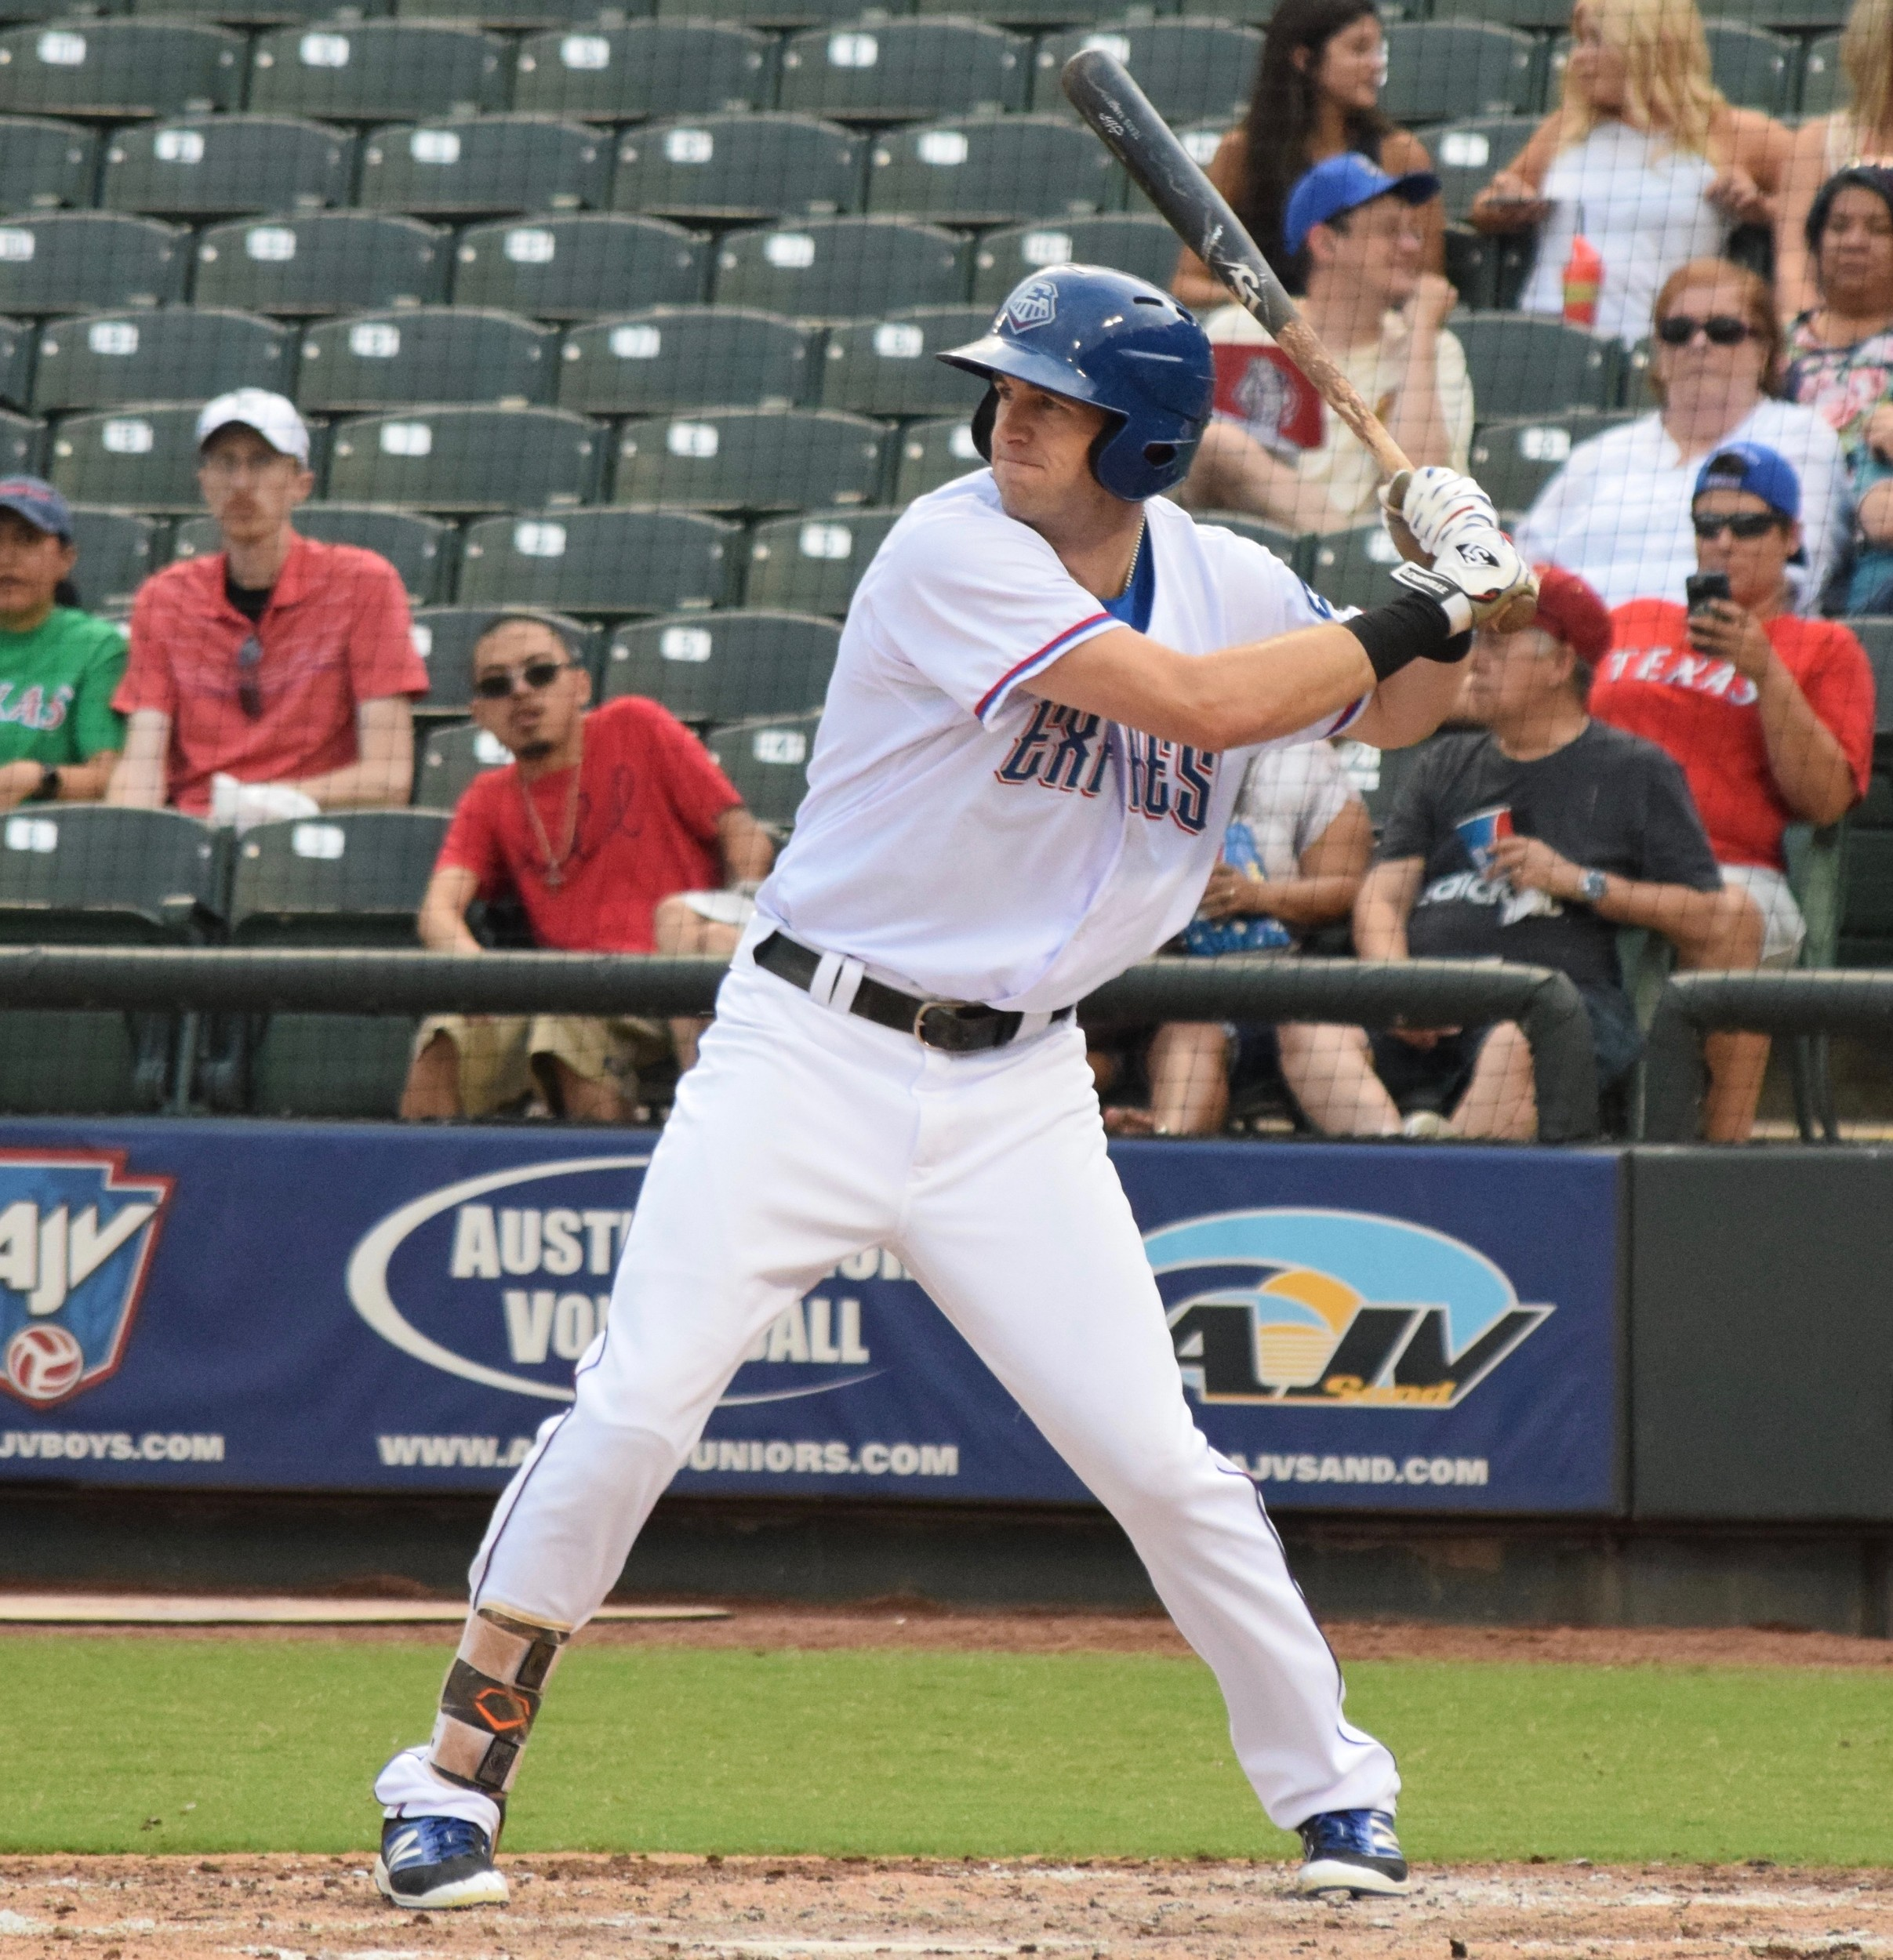 Jared Hoying collected three hits and the Express beat the Colorado Sky Sox 4-1 on Tuesday night